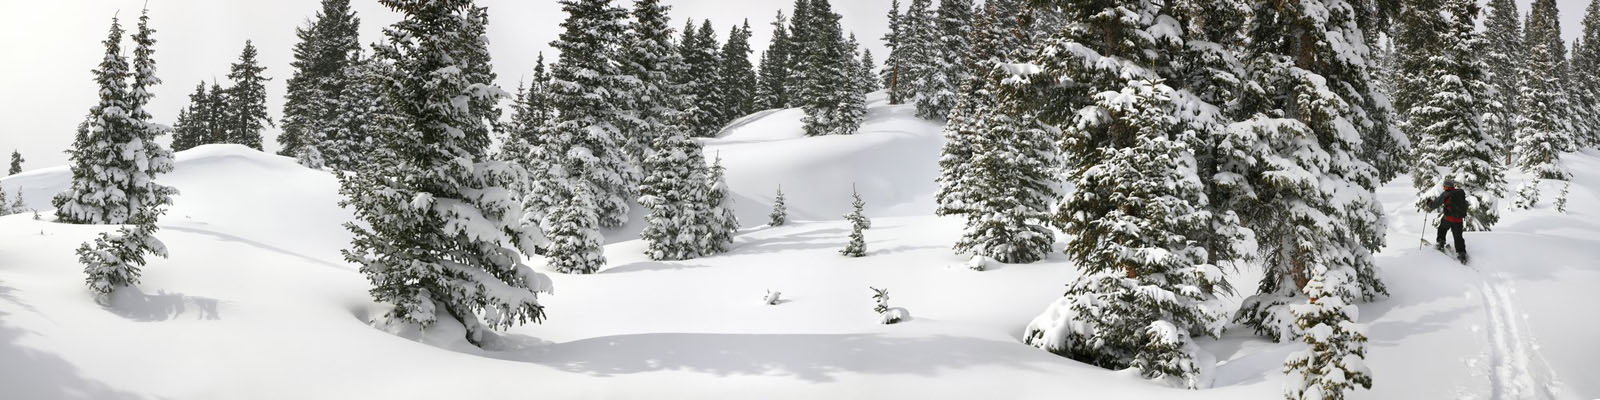 splitboarding,backcountry,skiing,Colorado,snow,deep,wilderness,mountains,panoramic,, photo